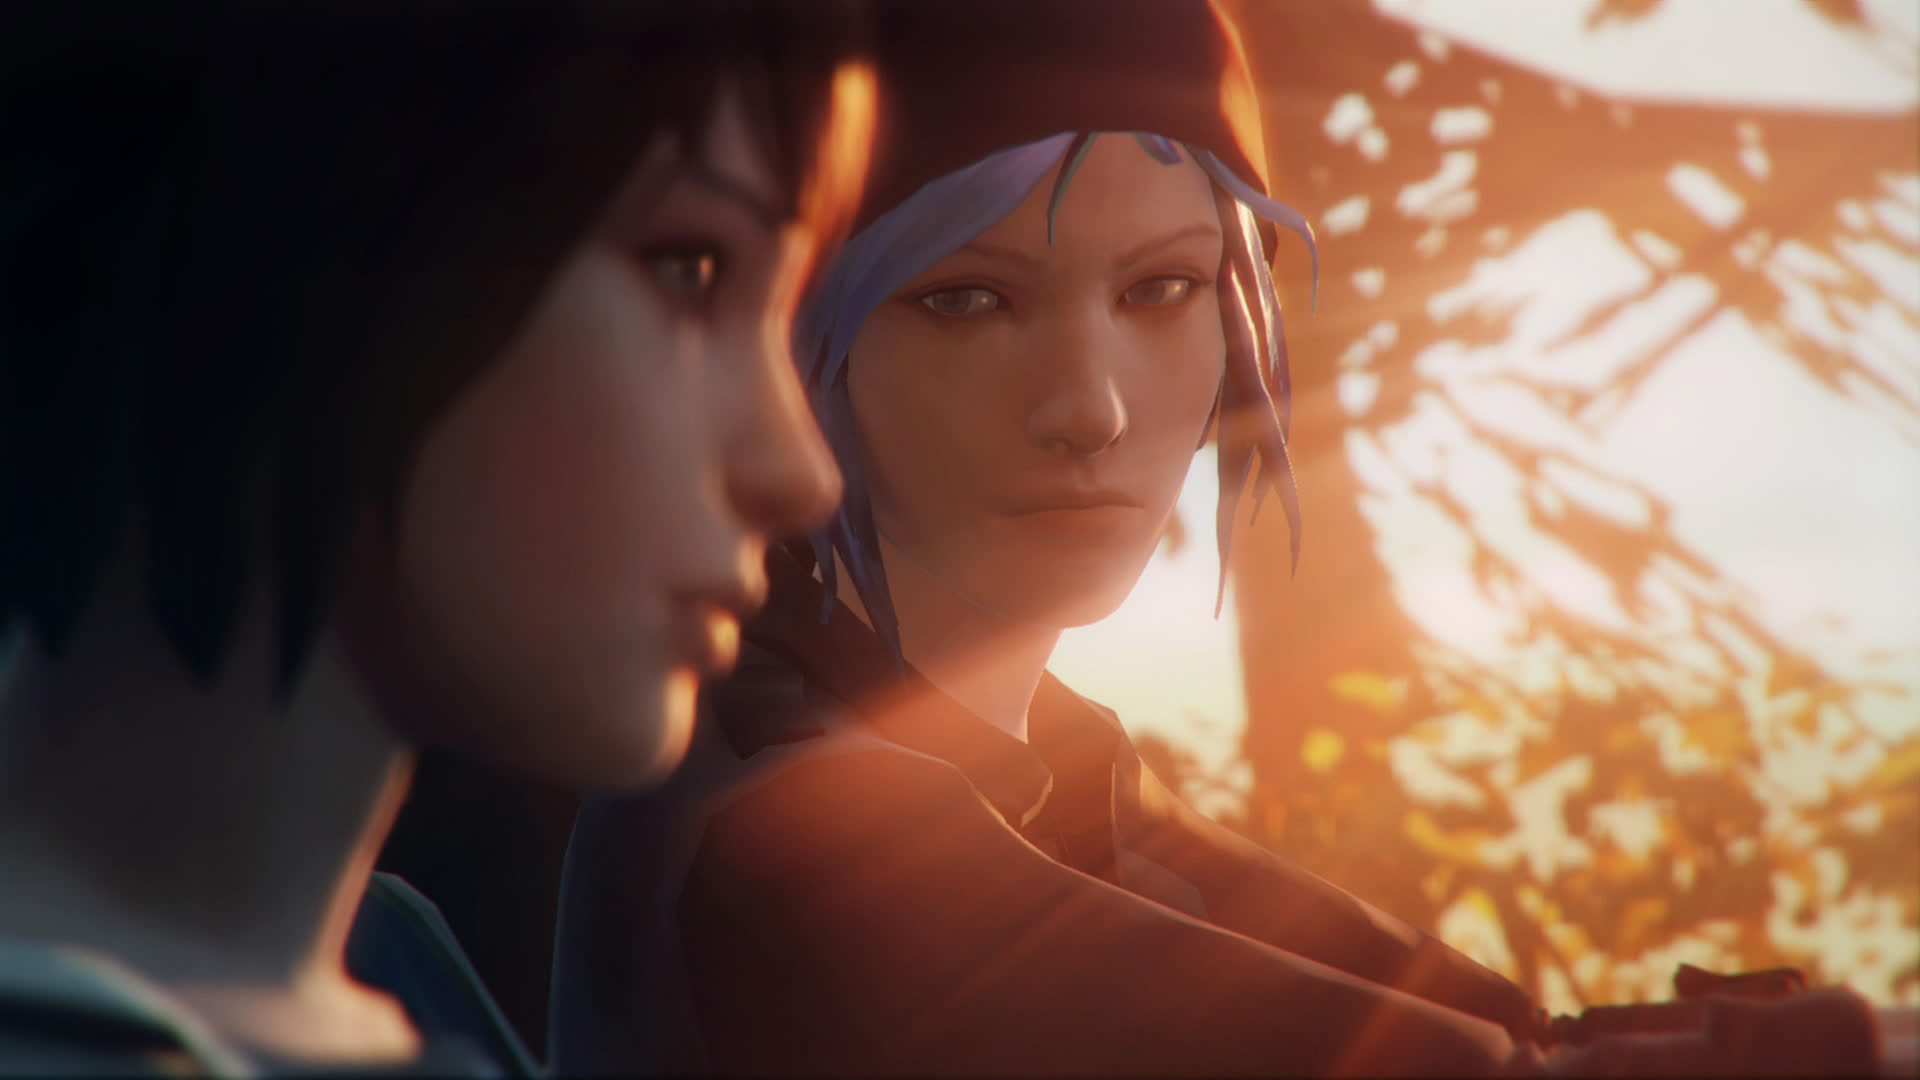 Square Enix to reveal new Life Is Strange game on March 18